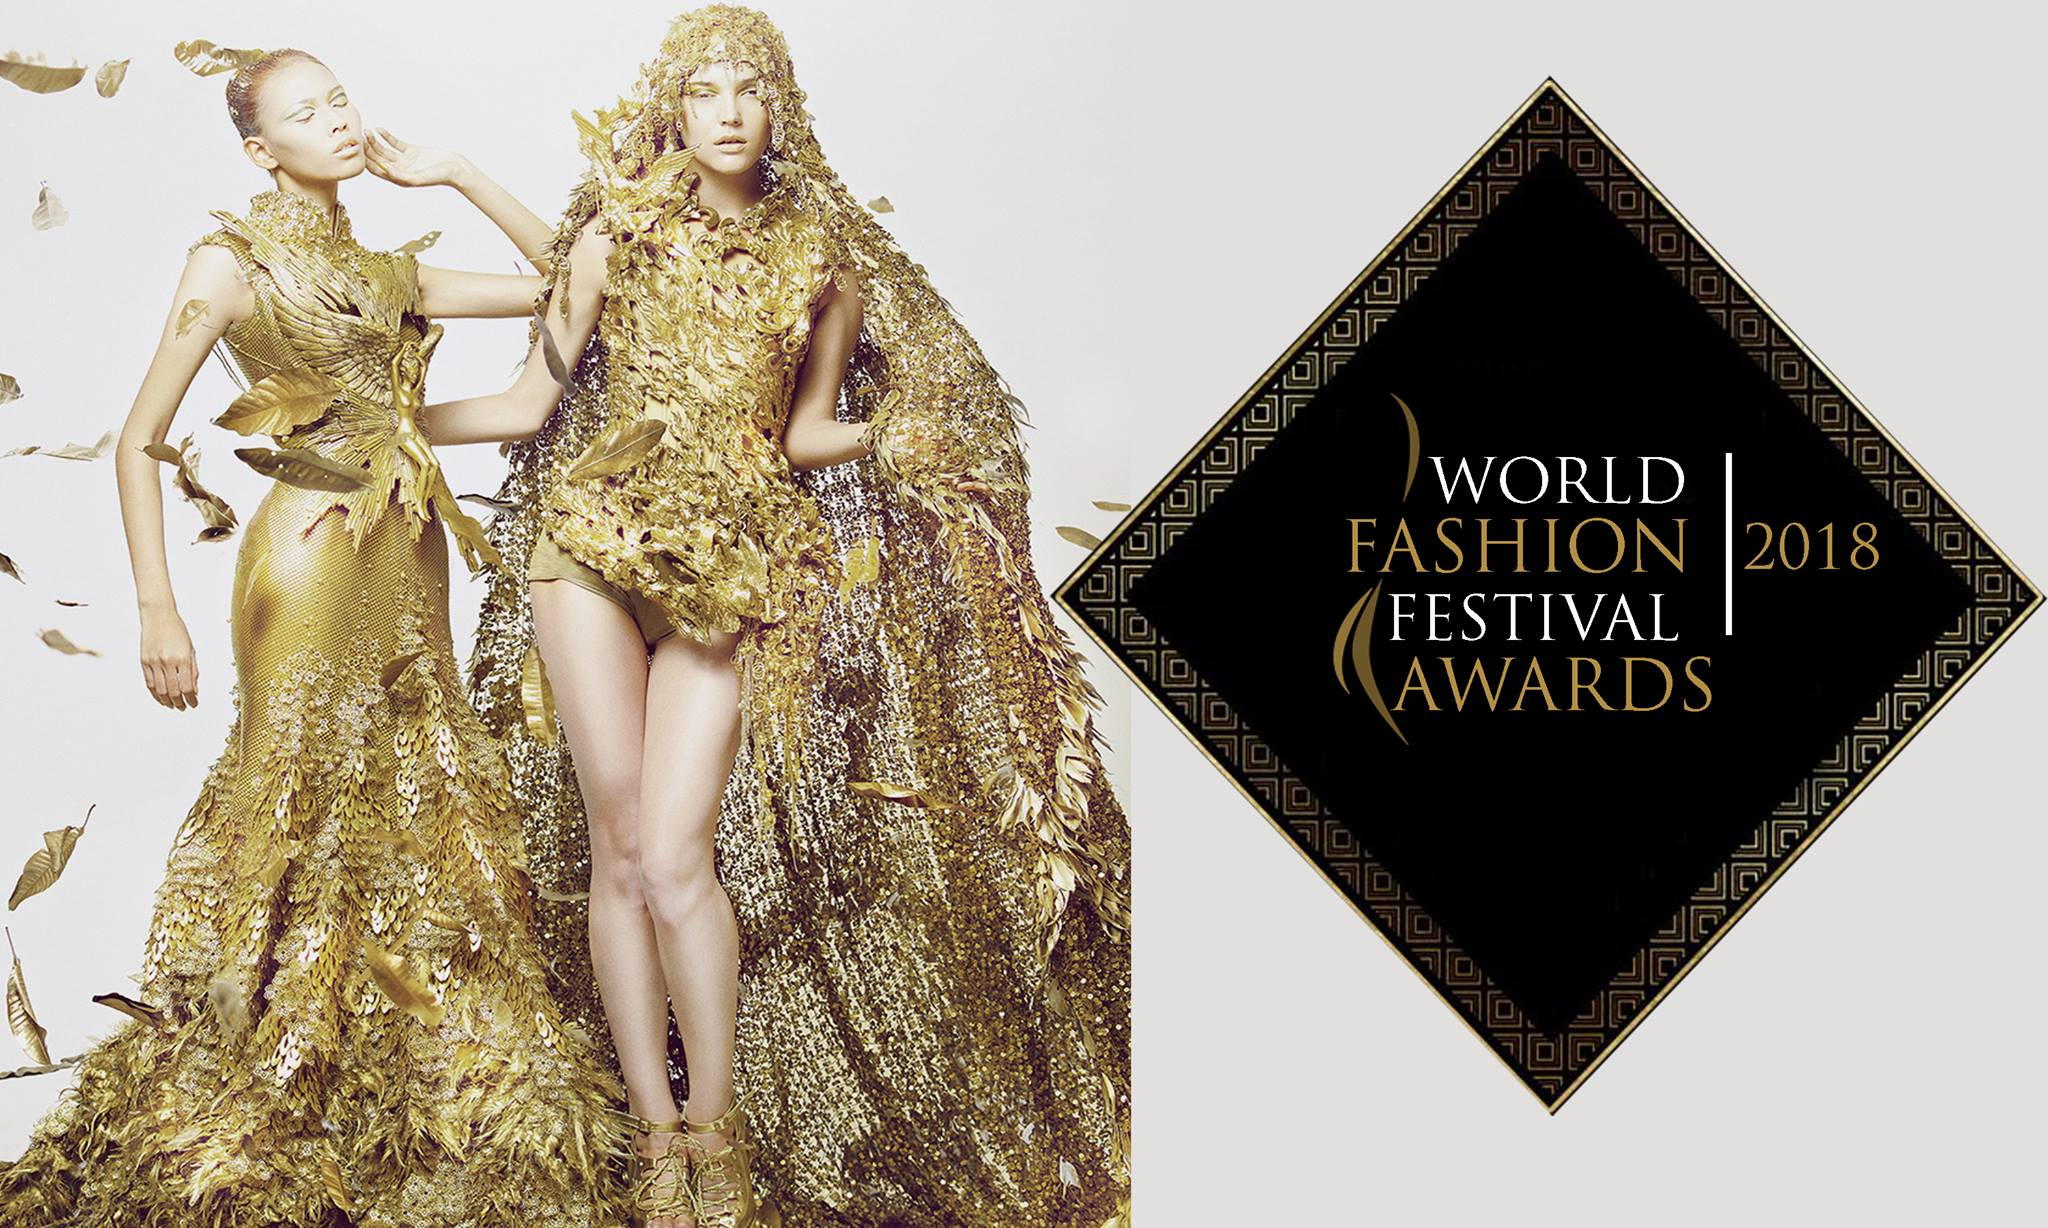 World Fashion Festival Awards 2018